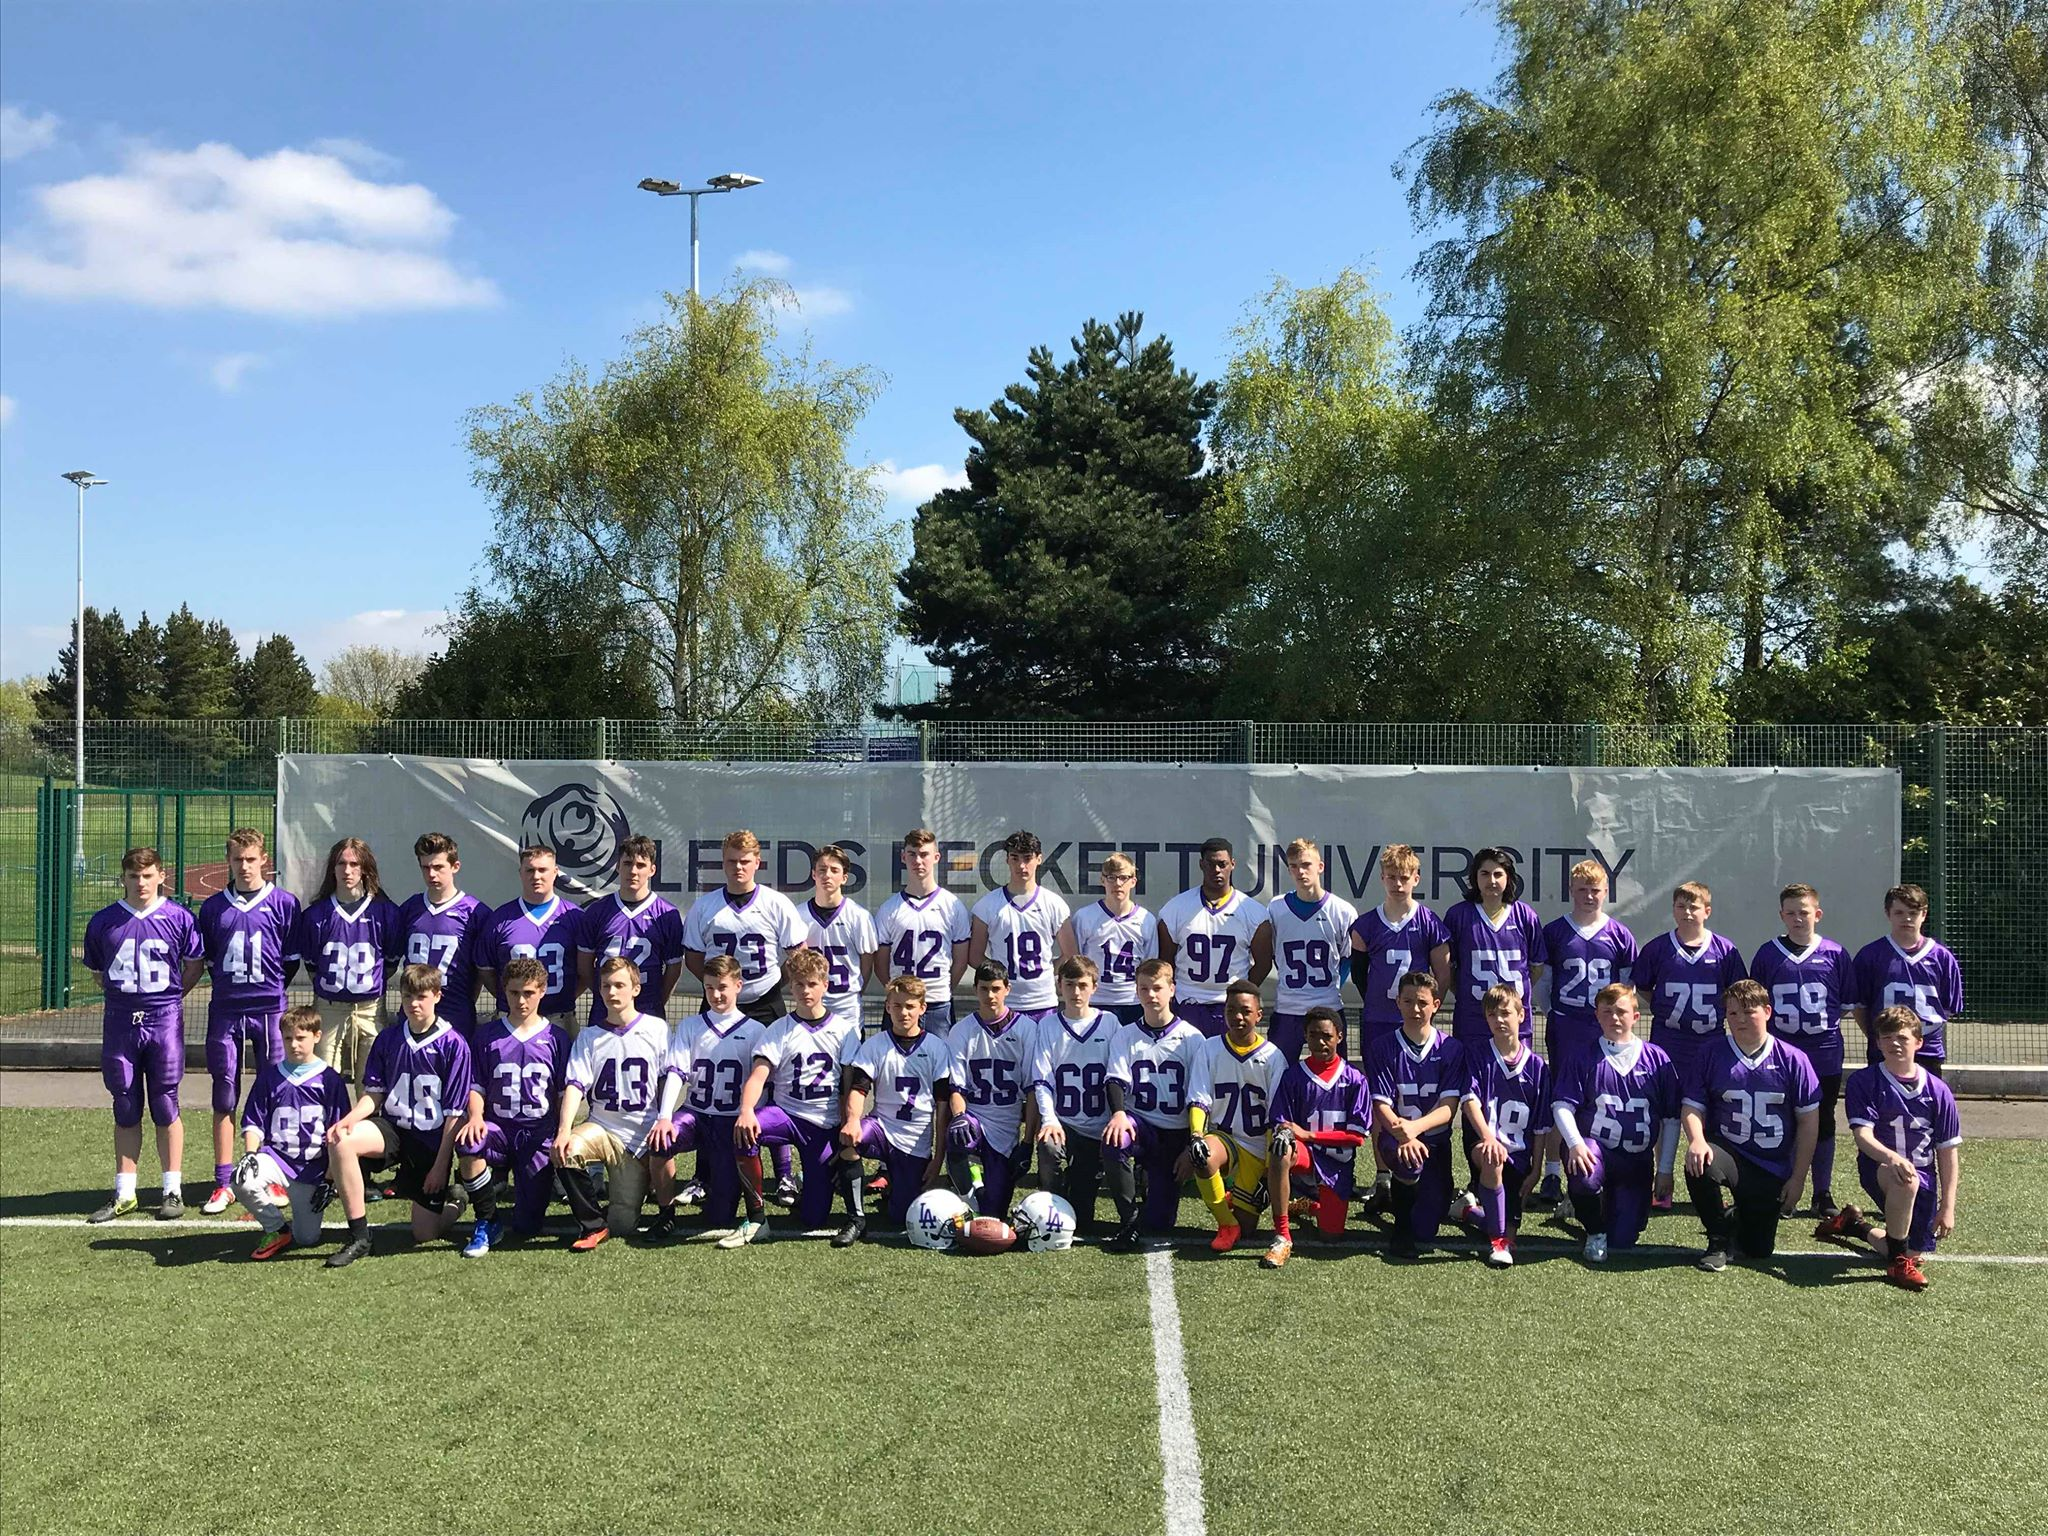 14 Leeds American Football Academy players selected for Great Britain trials